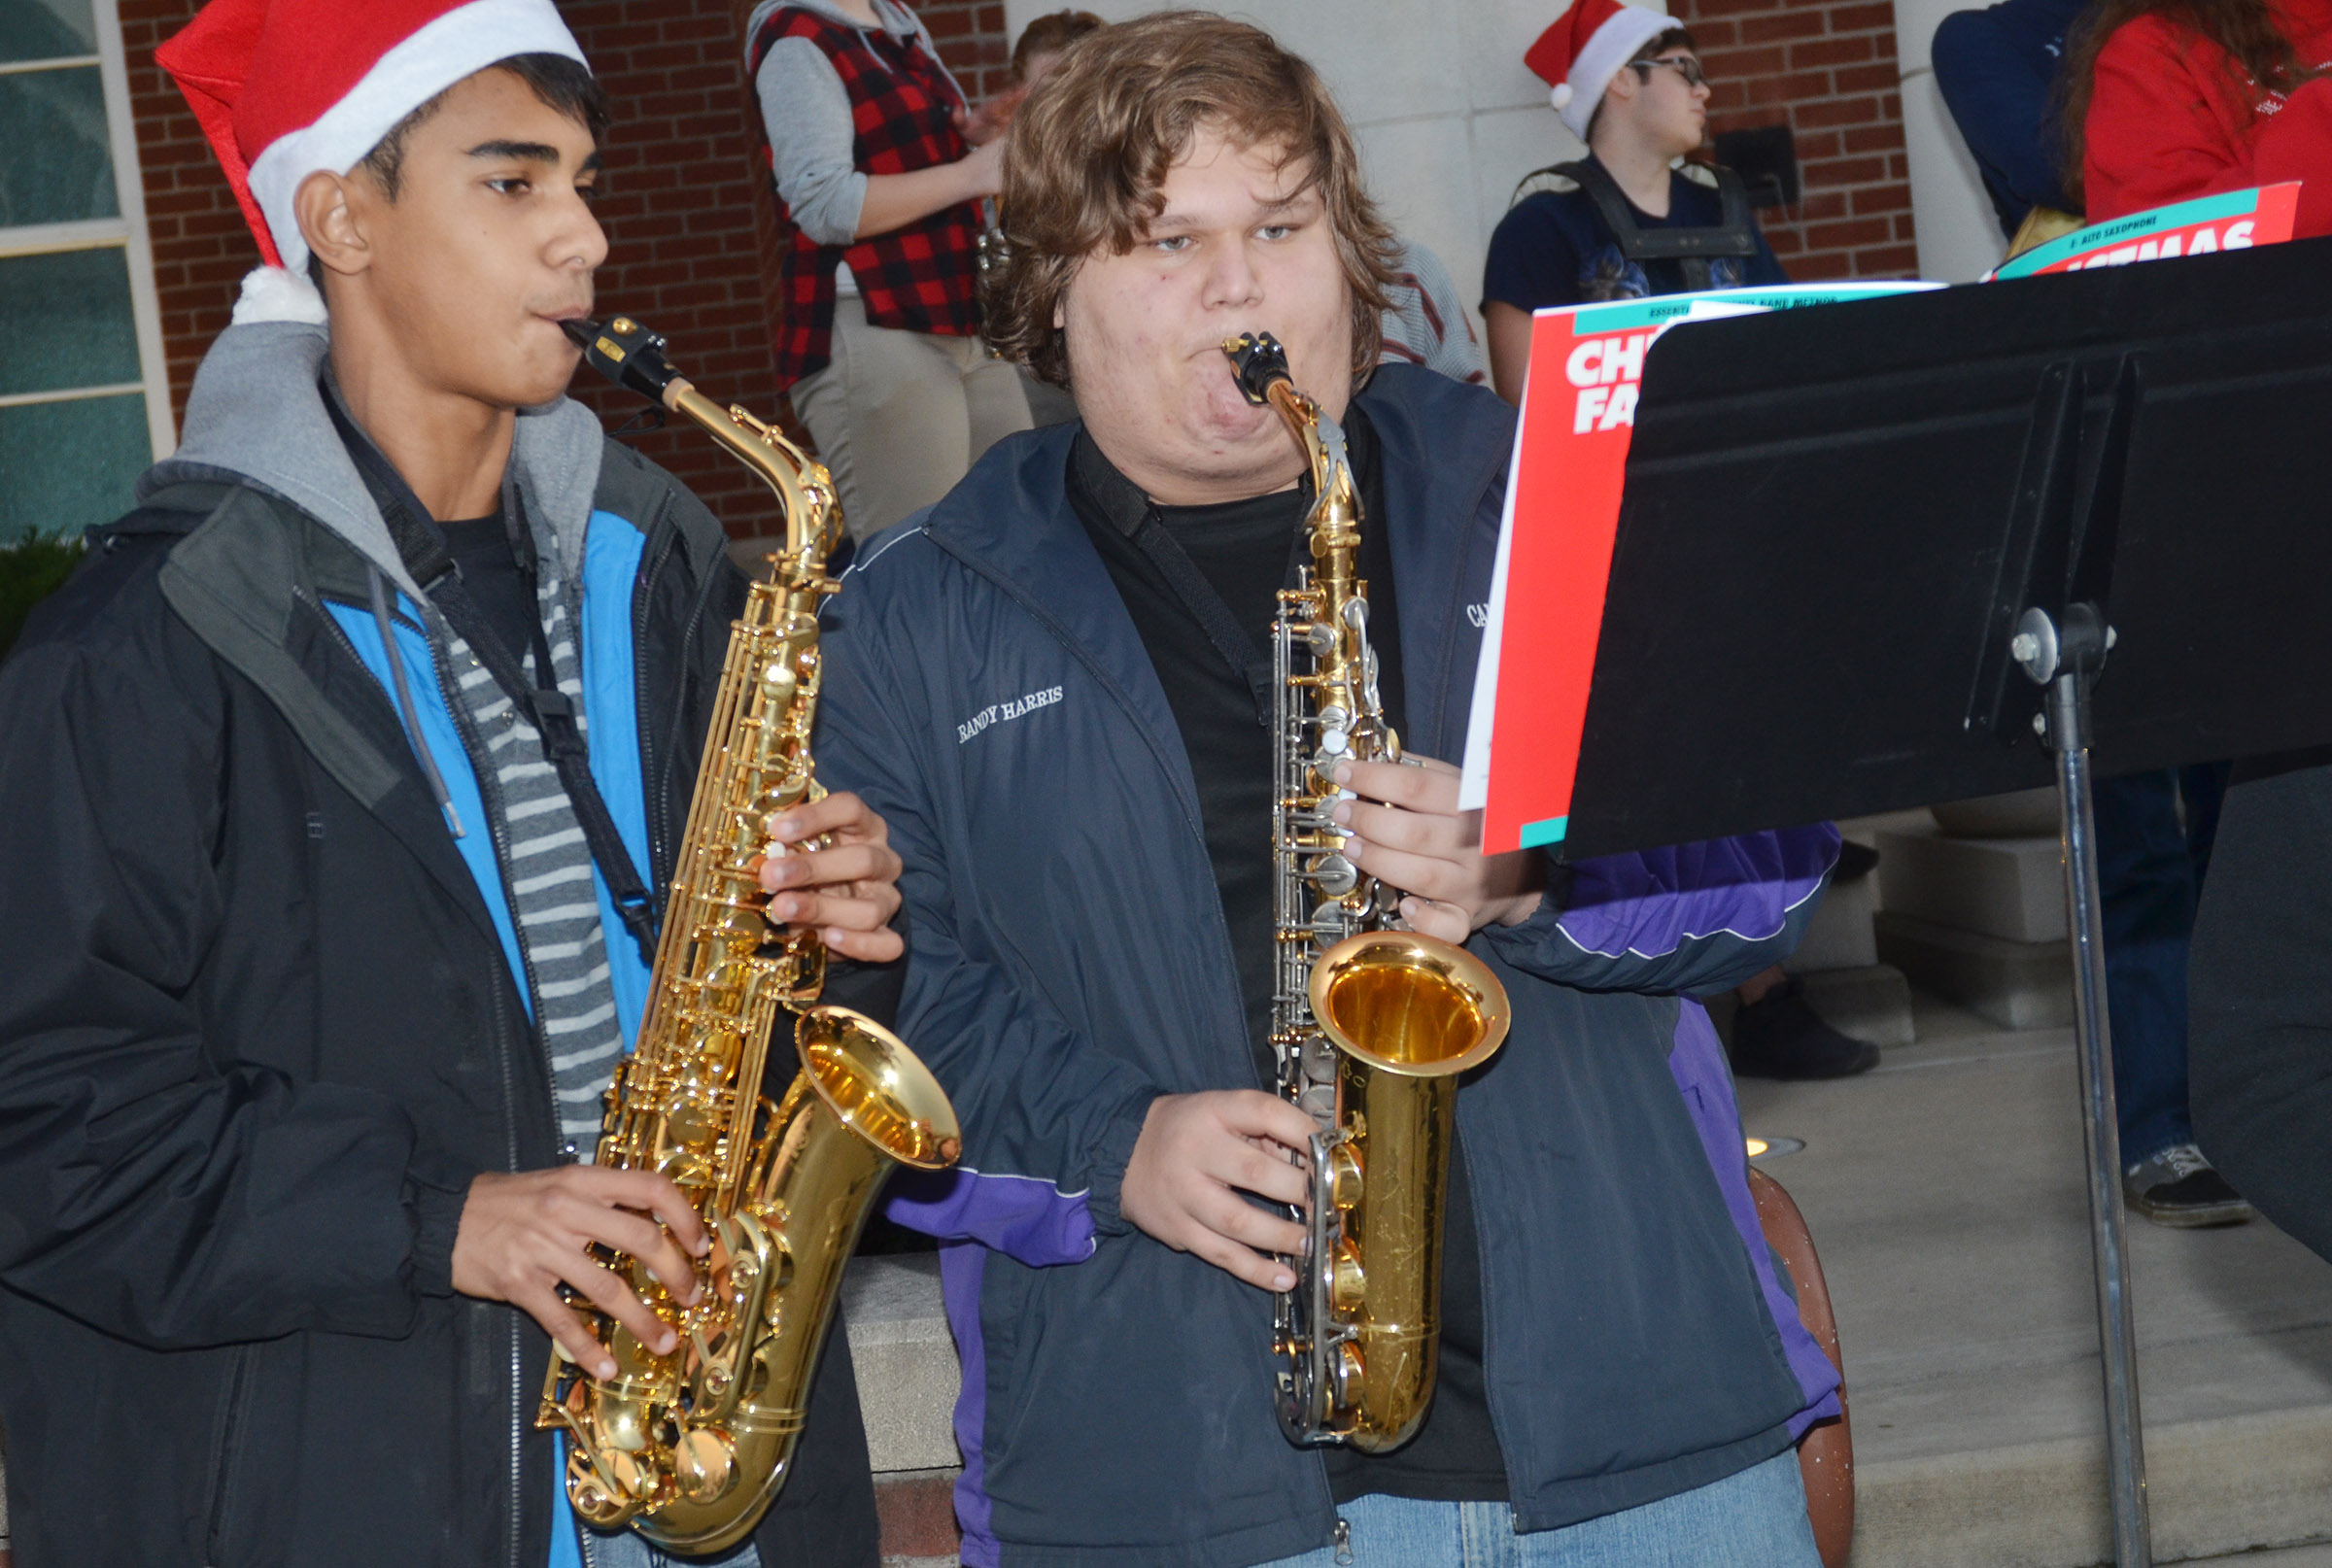 CHS sophomore David Silva, at left, and junior Randy Harris play saxophone.